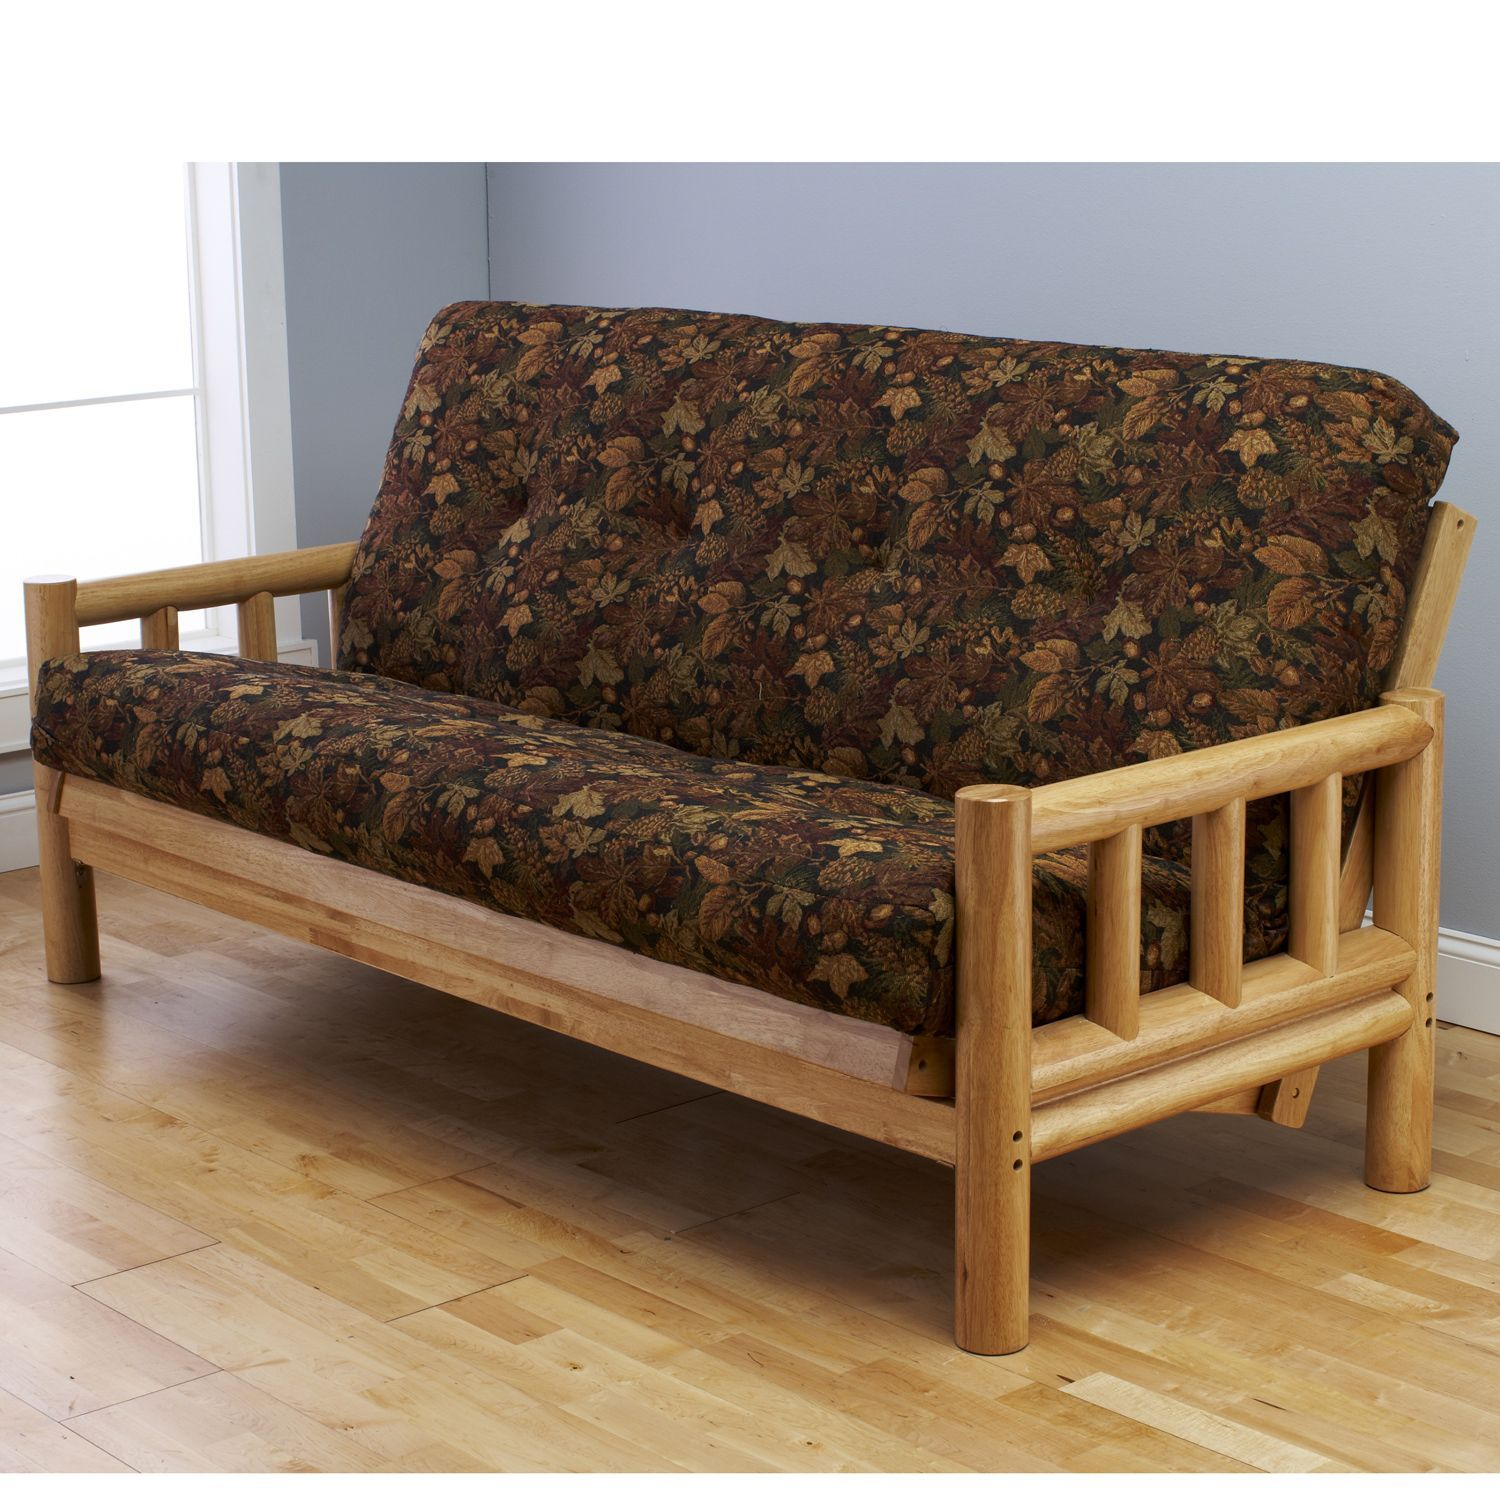 Add a natural look to your home with this unique futon frame and ...